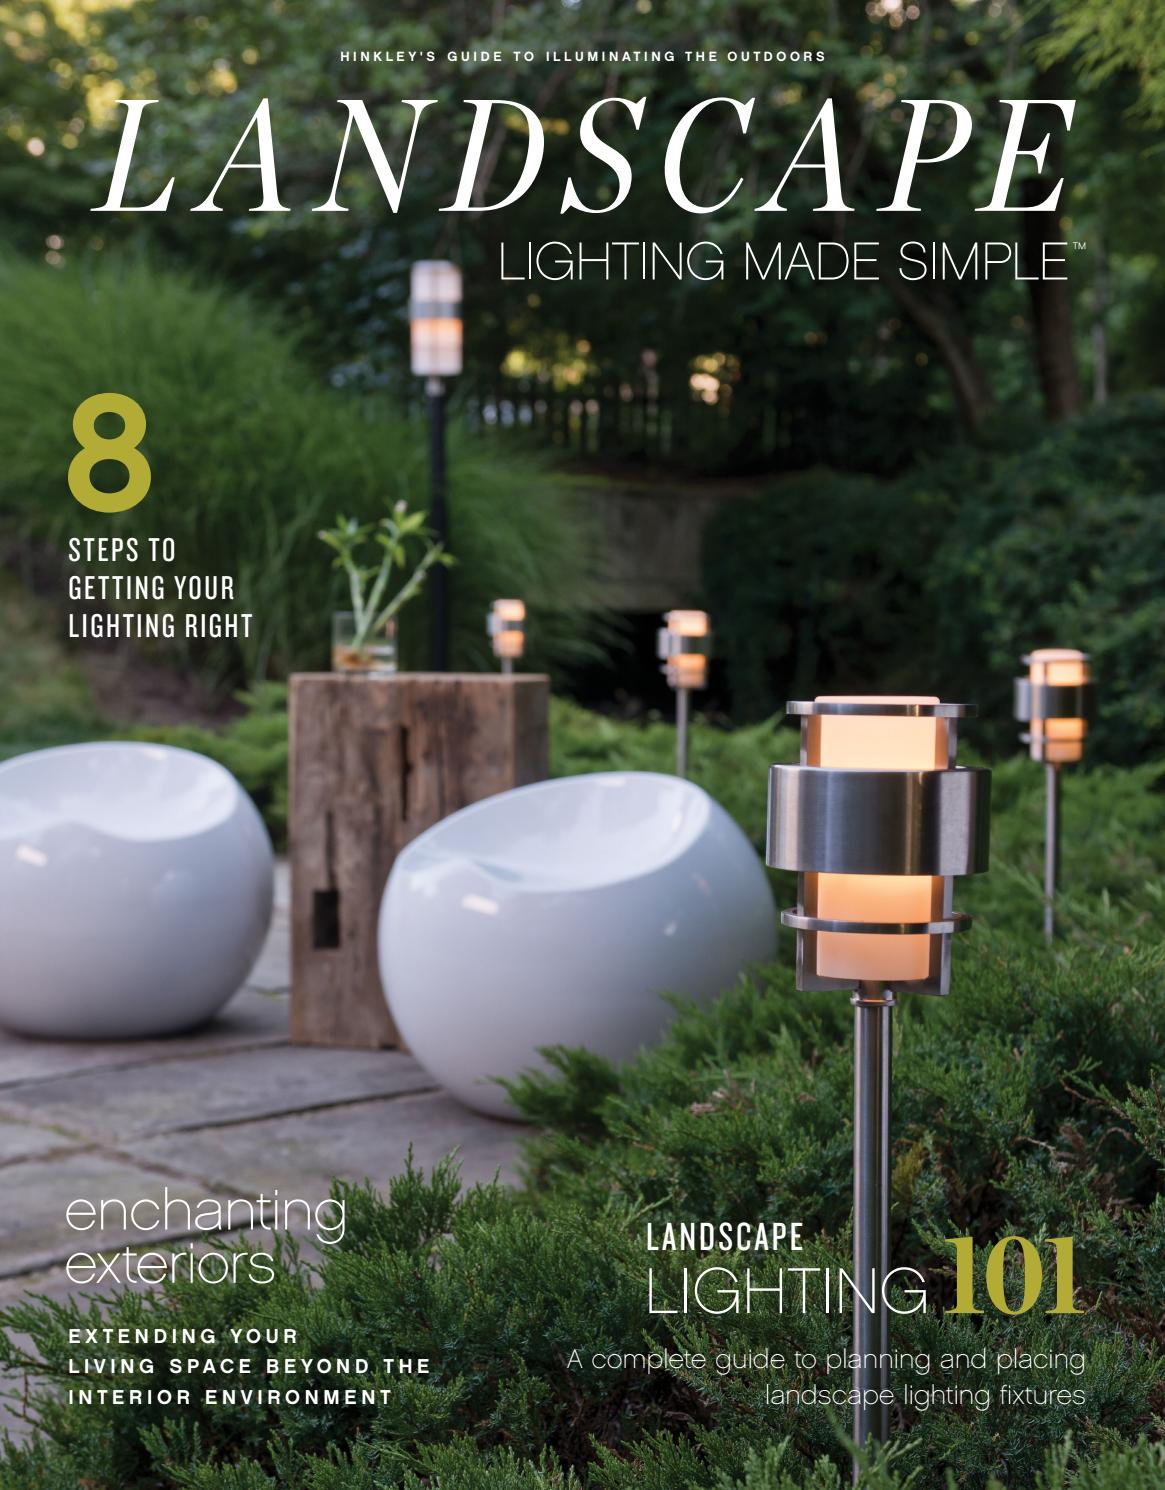 Landscape Lighting Made Simple by Hinkley Lighting - issuu